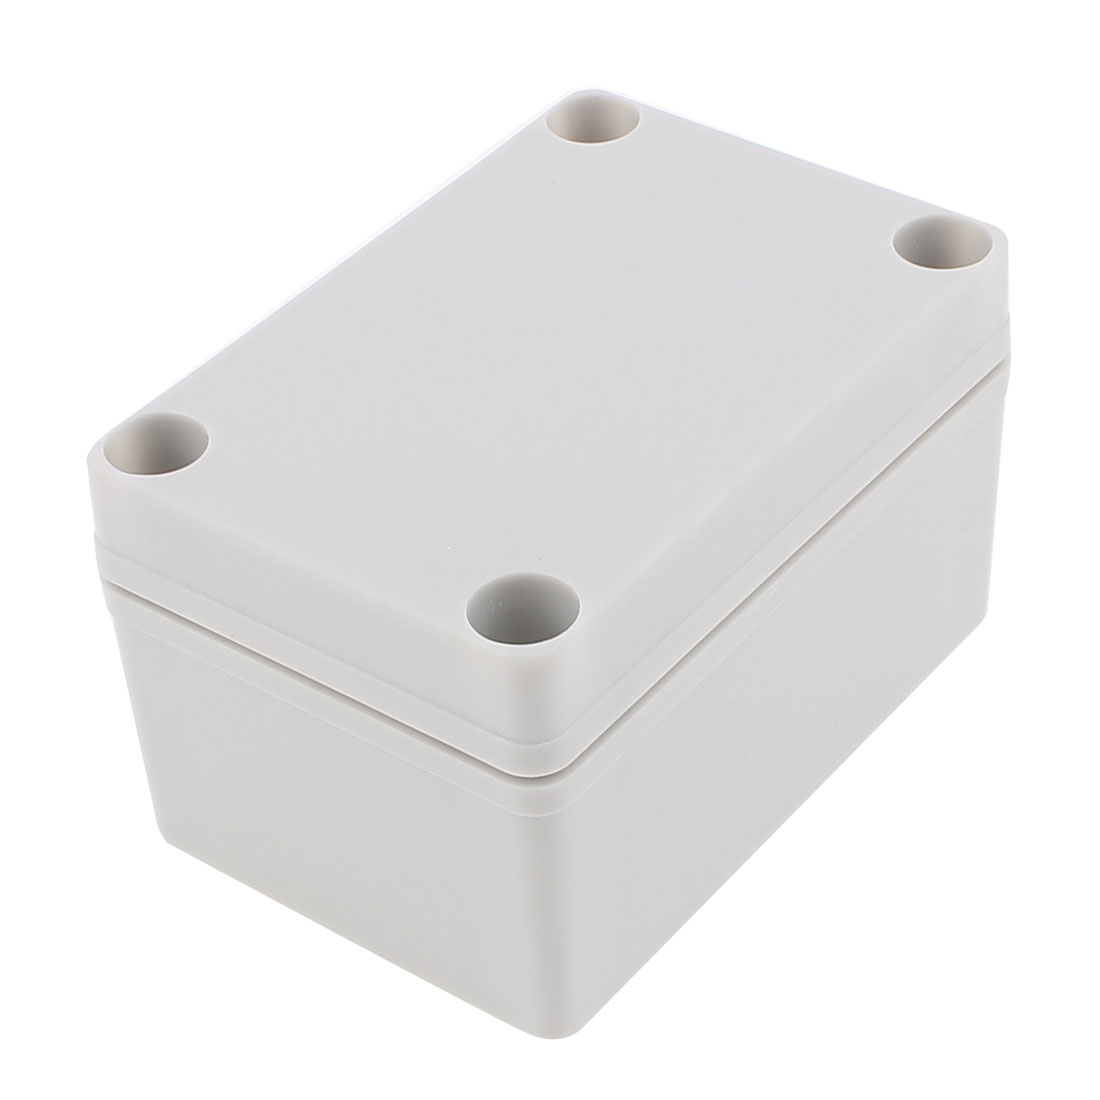 95 x 65 x 55mm Dustproof IP65 Junction Box Terminal Connecting Box Enclosure